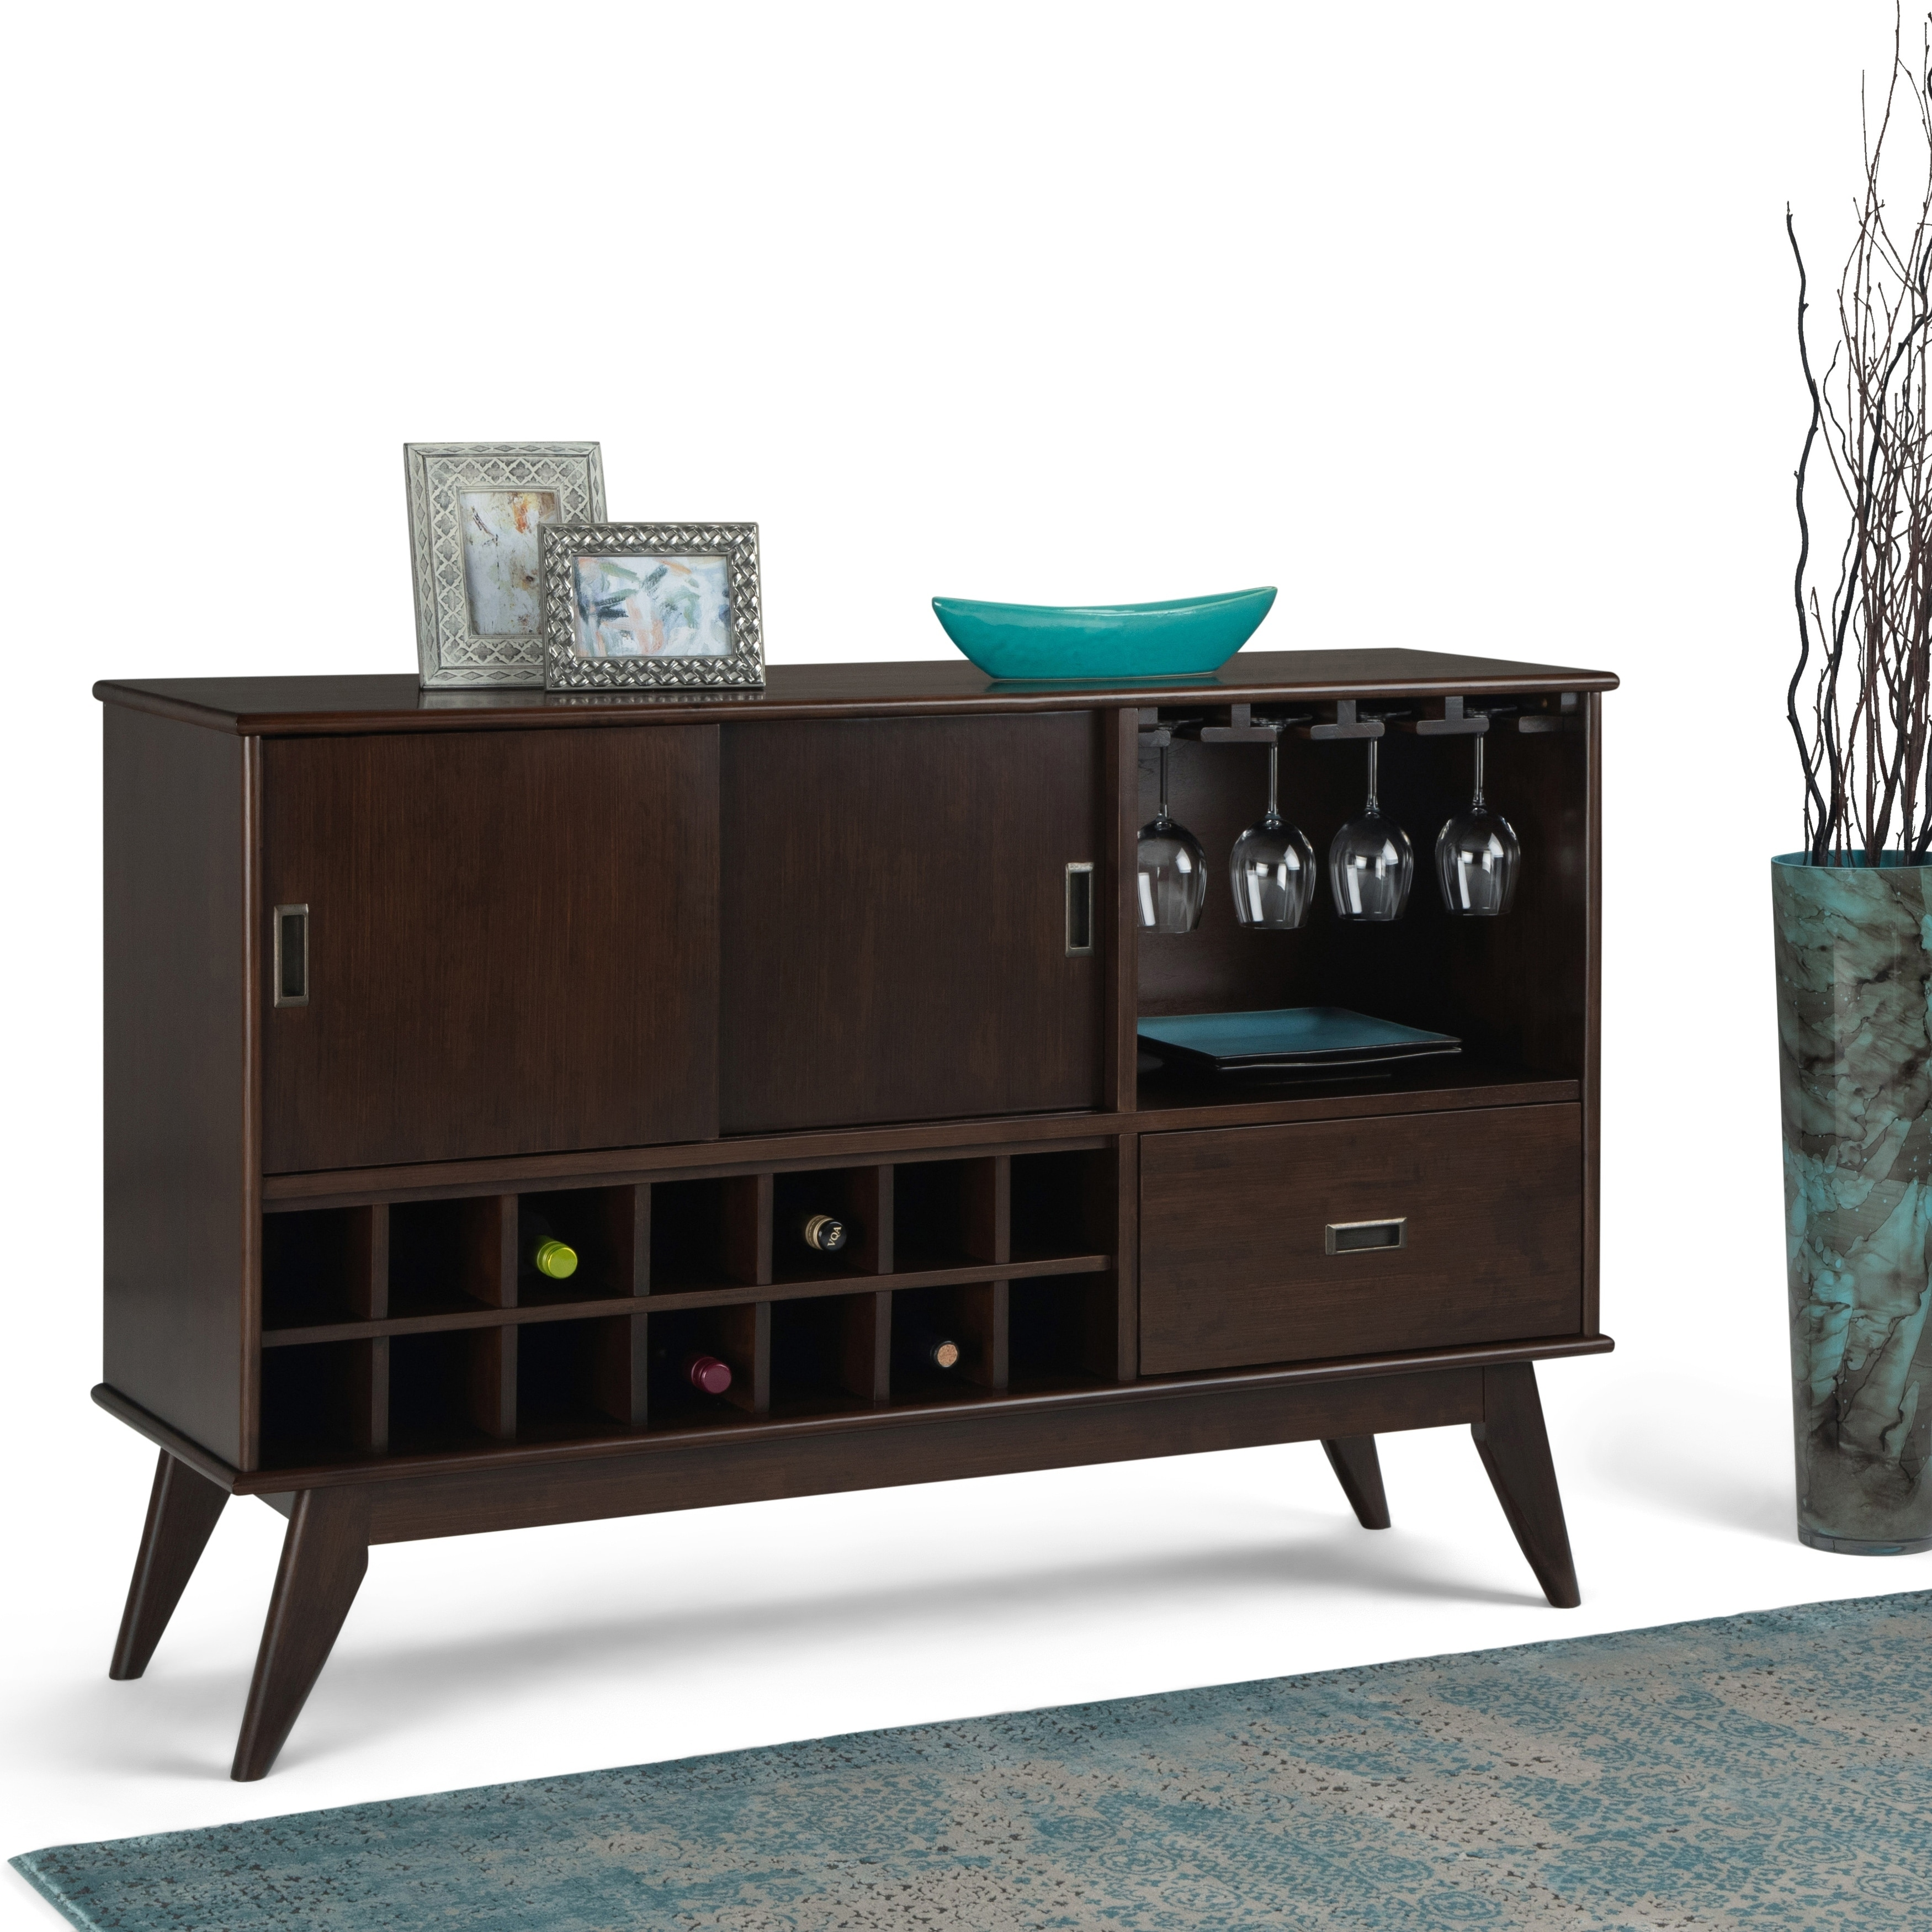 Picture of: Shop Wyndenhall Tierney Solid Hardwood 54 Inch Wide Mid Century Modern Sideboard Buffet With Glassware Storage In Medium Auburn Brown On Sale Overstock 27621412